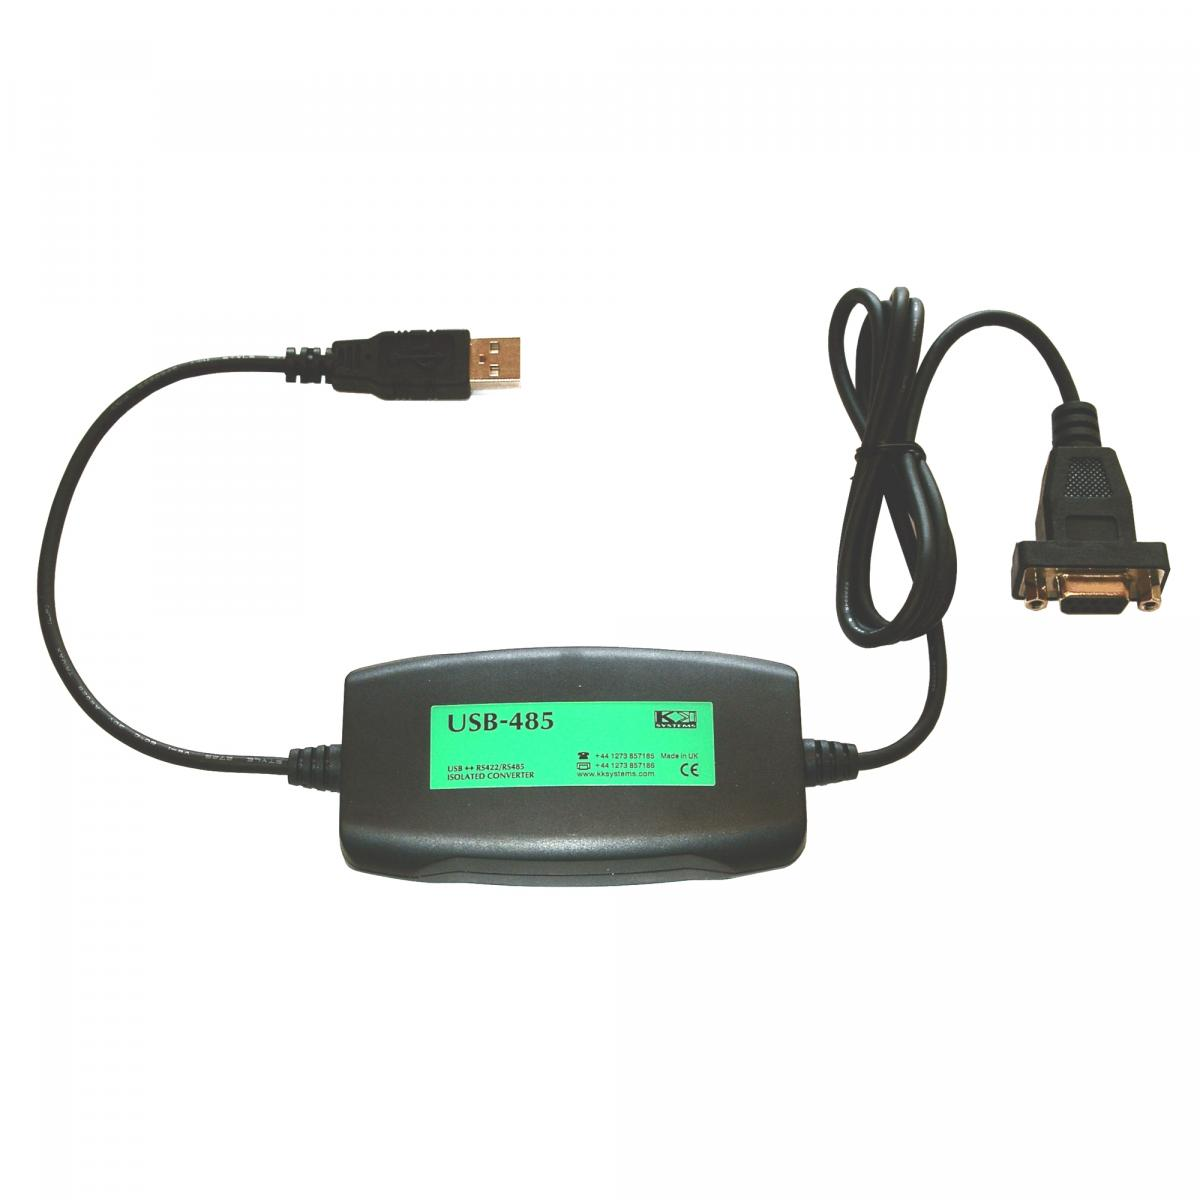 USB to RS422/RS485 isolated converter, USB-485 | BESD